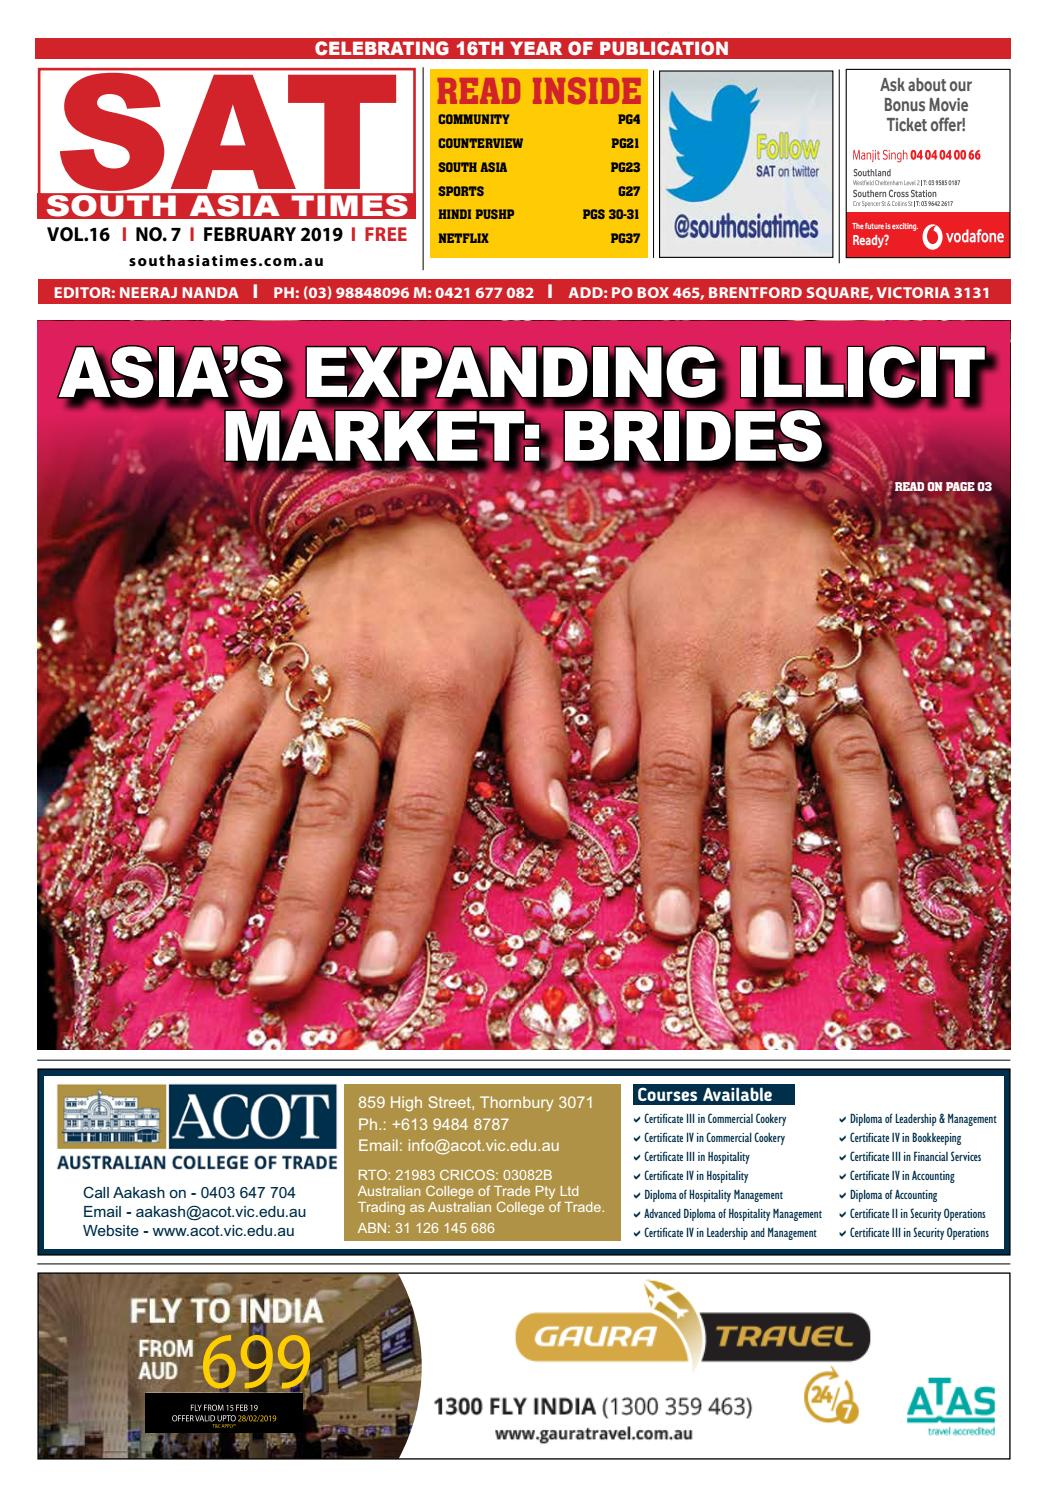 South Asia Times - Feb 2019 by South Asia Times - issuu